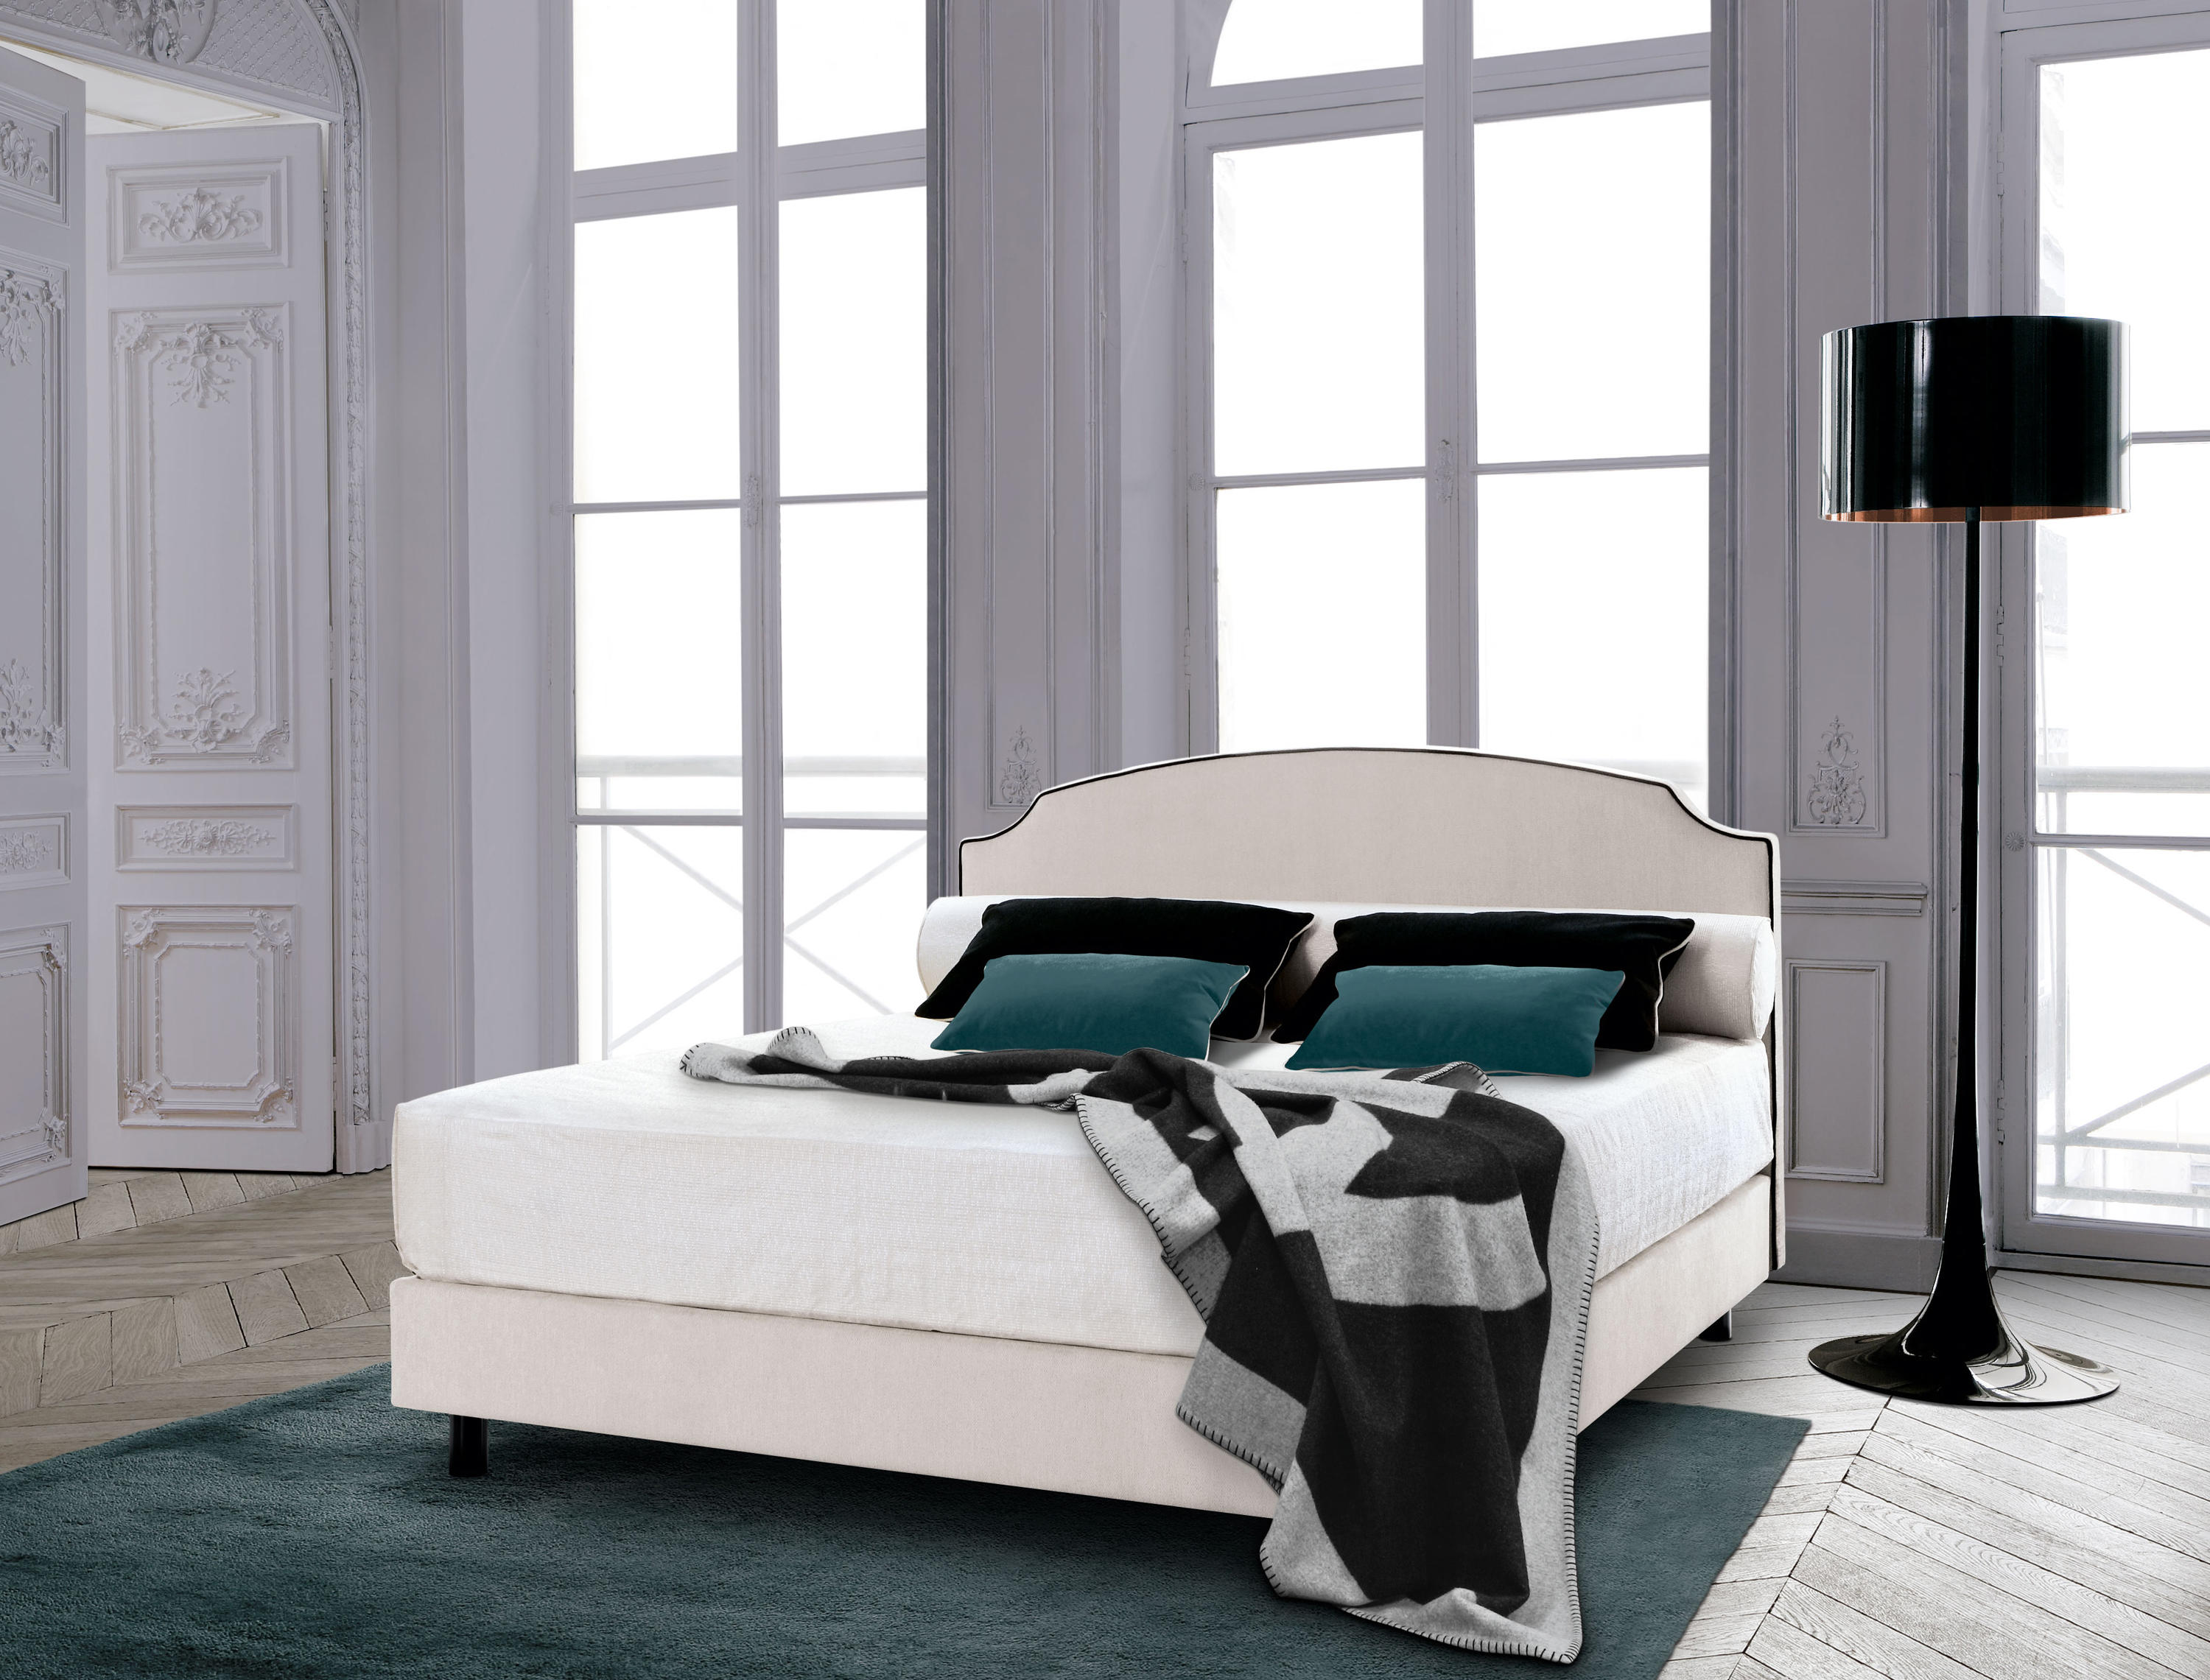 sleeping systems collection prestige headboard louis xvi double beds from treca interiors. Black Bedroom Furniture Sets. Home Design Ideas